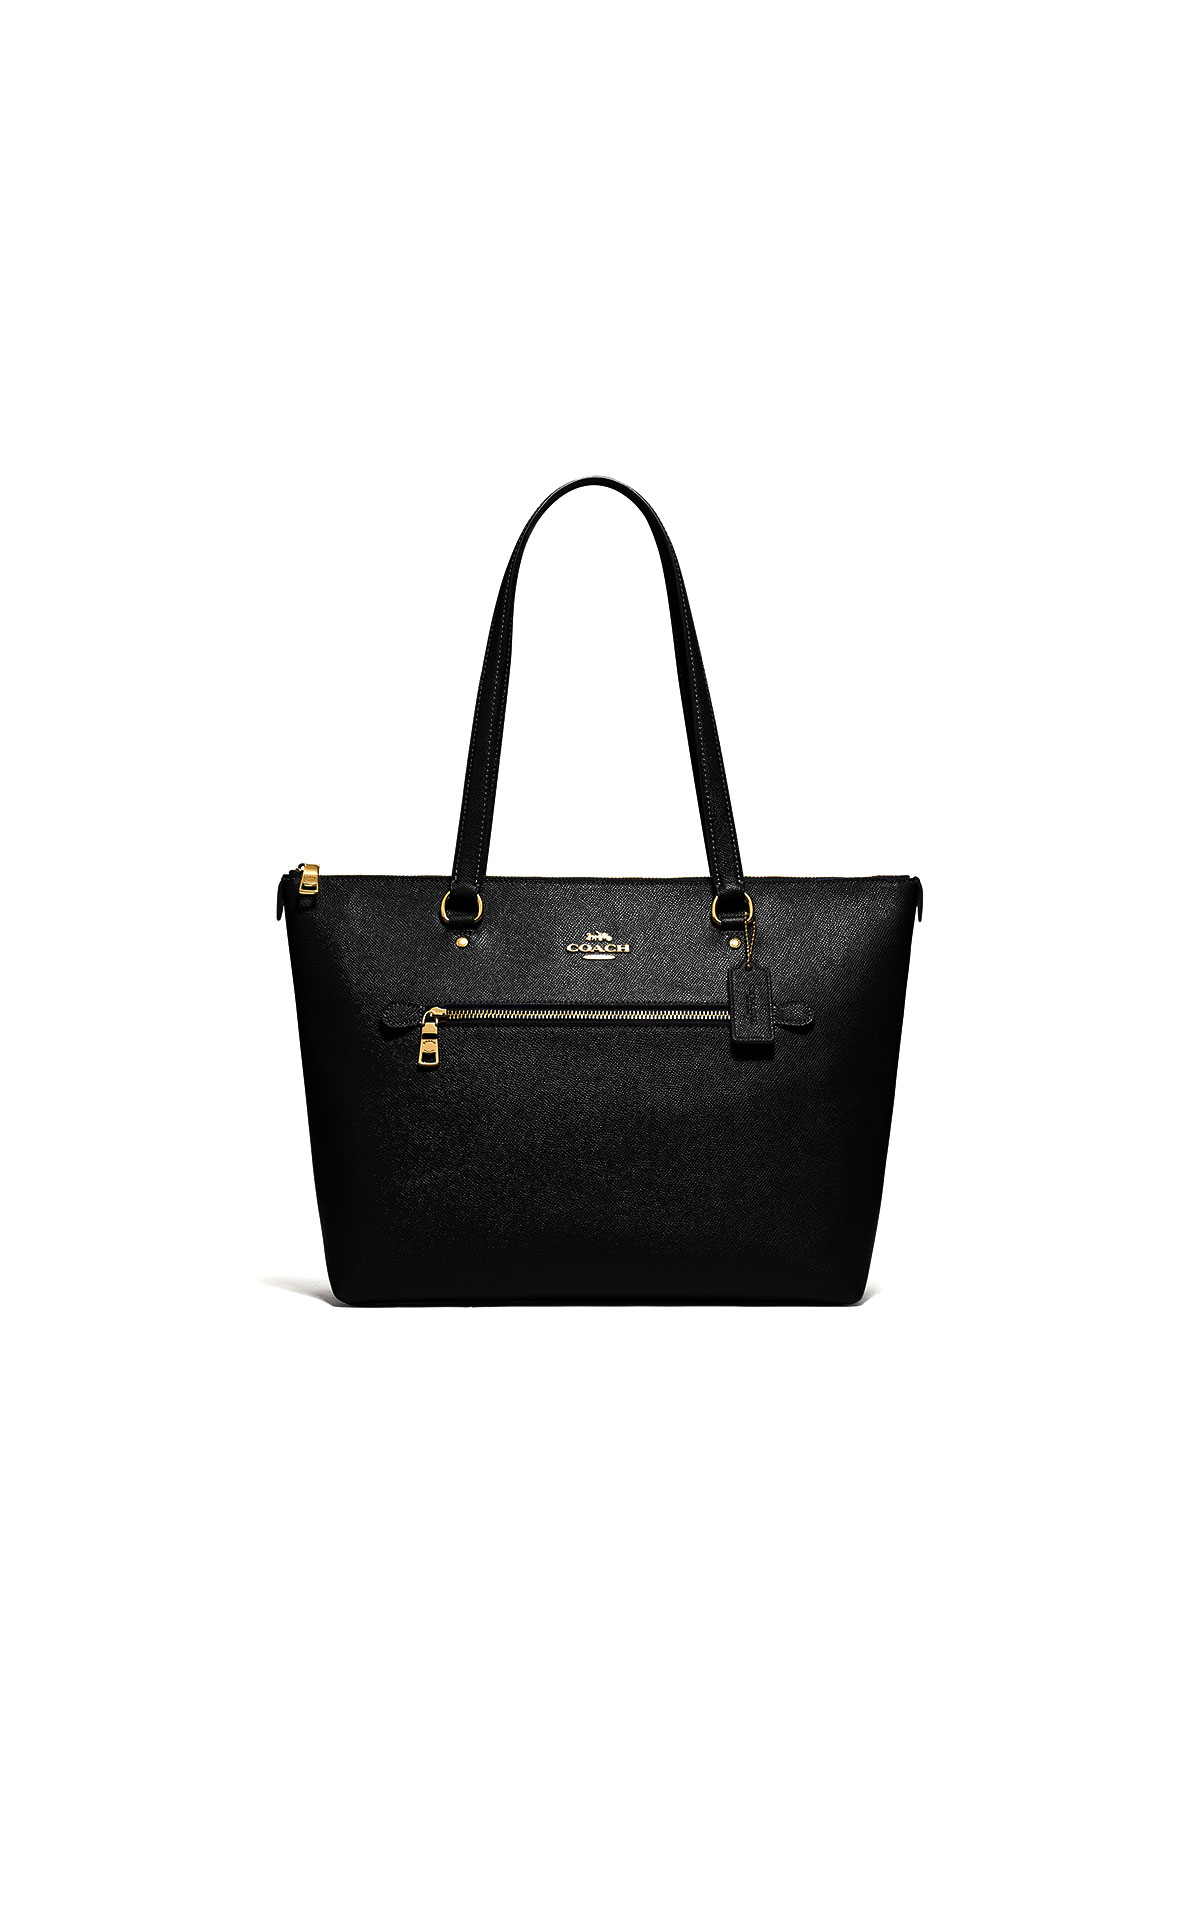 Coach gallery tote at The Bicester Village Shopping Collection